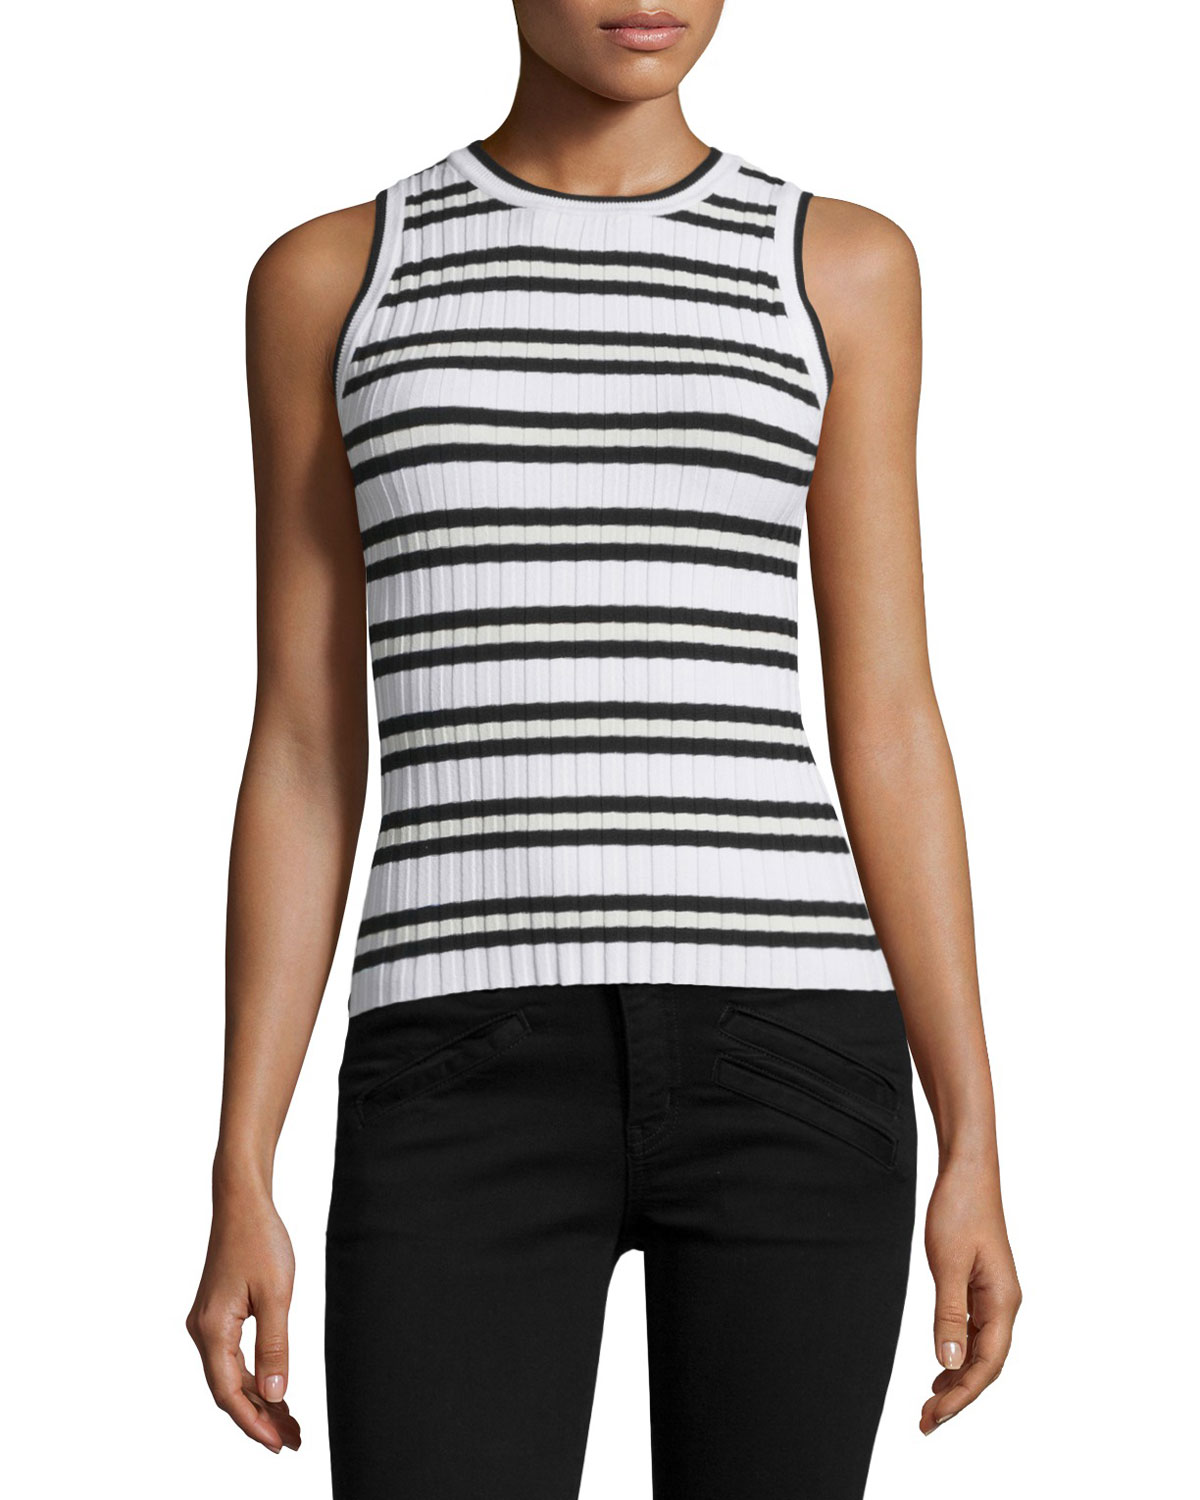 Sleeveless Neutral Striped Tank, Size: L, Multi Colors - Milly